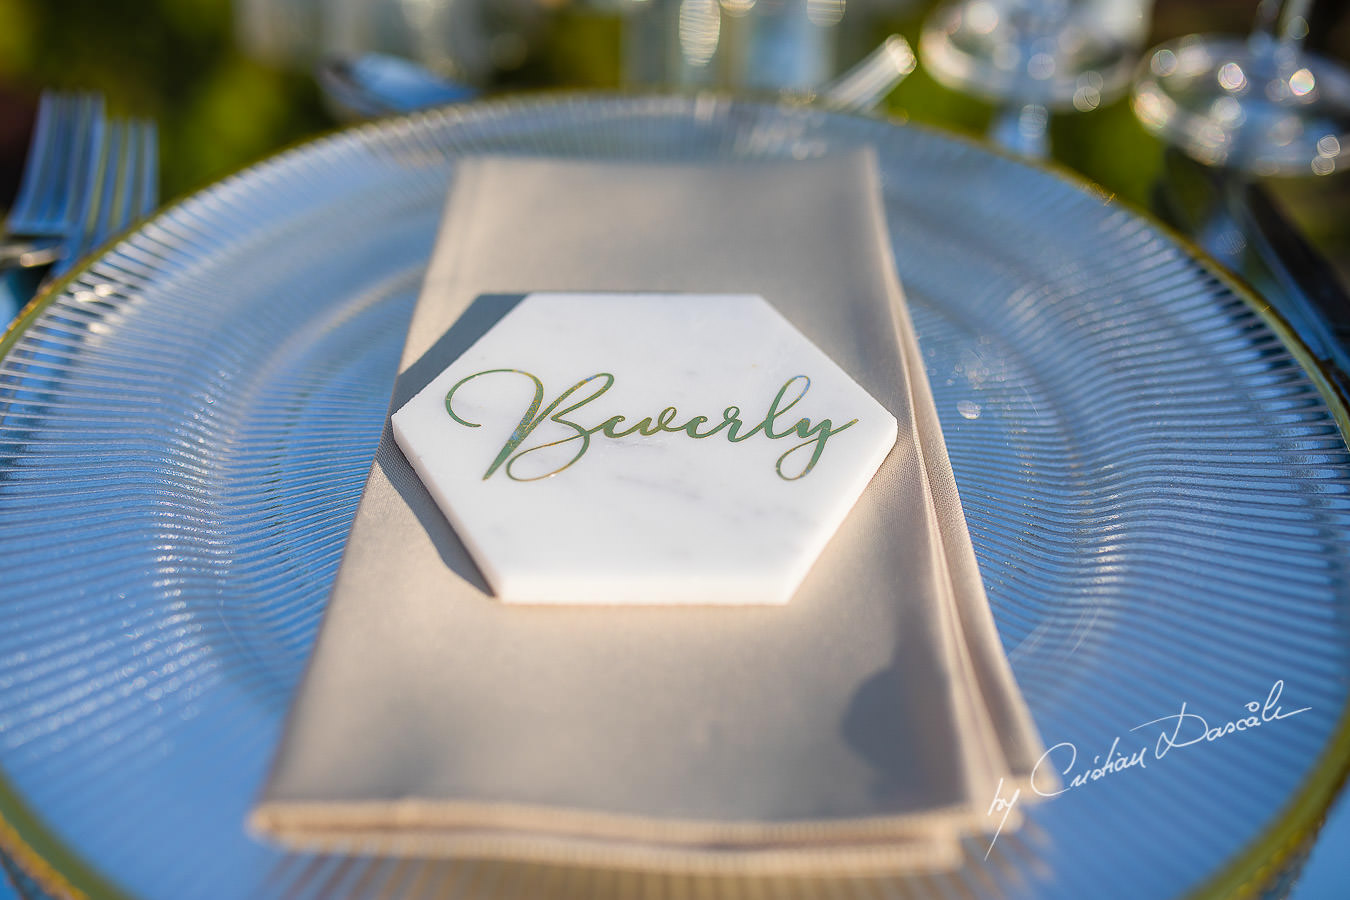 Table details captured by Cristian Dascalu during an elegant Aphrodite Hills Wedding in Cyprus.